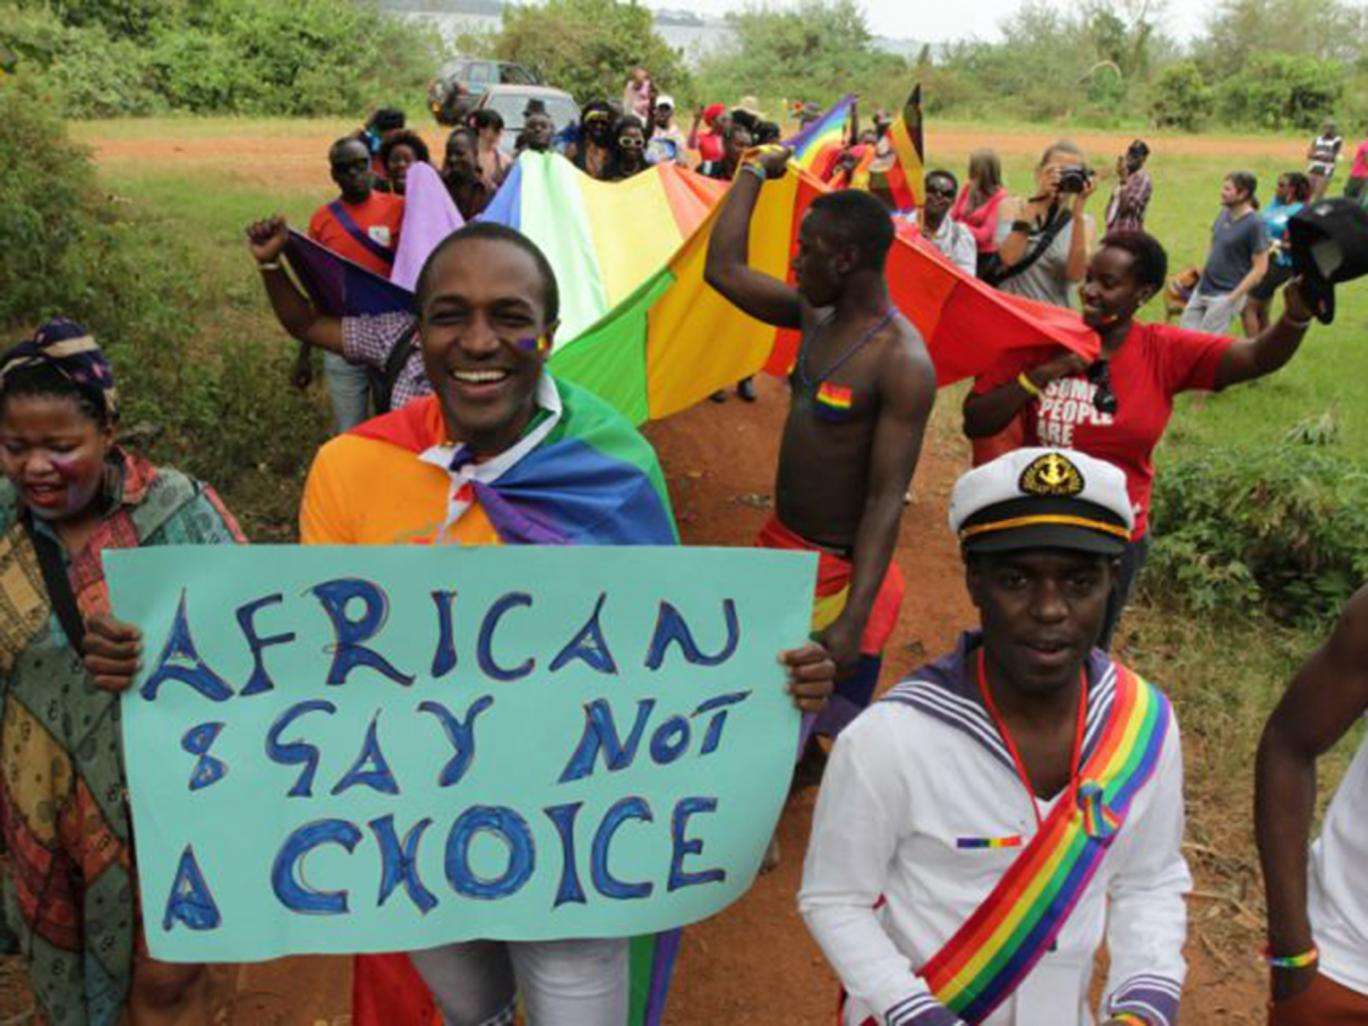 African pro LGBT protest